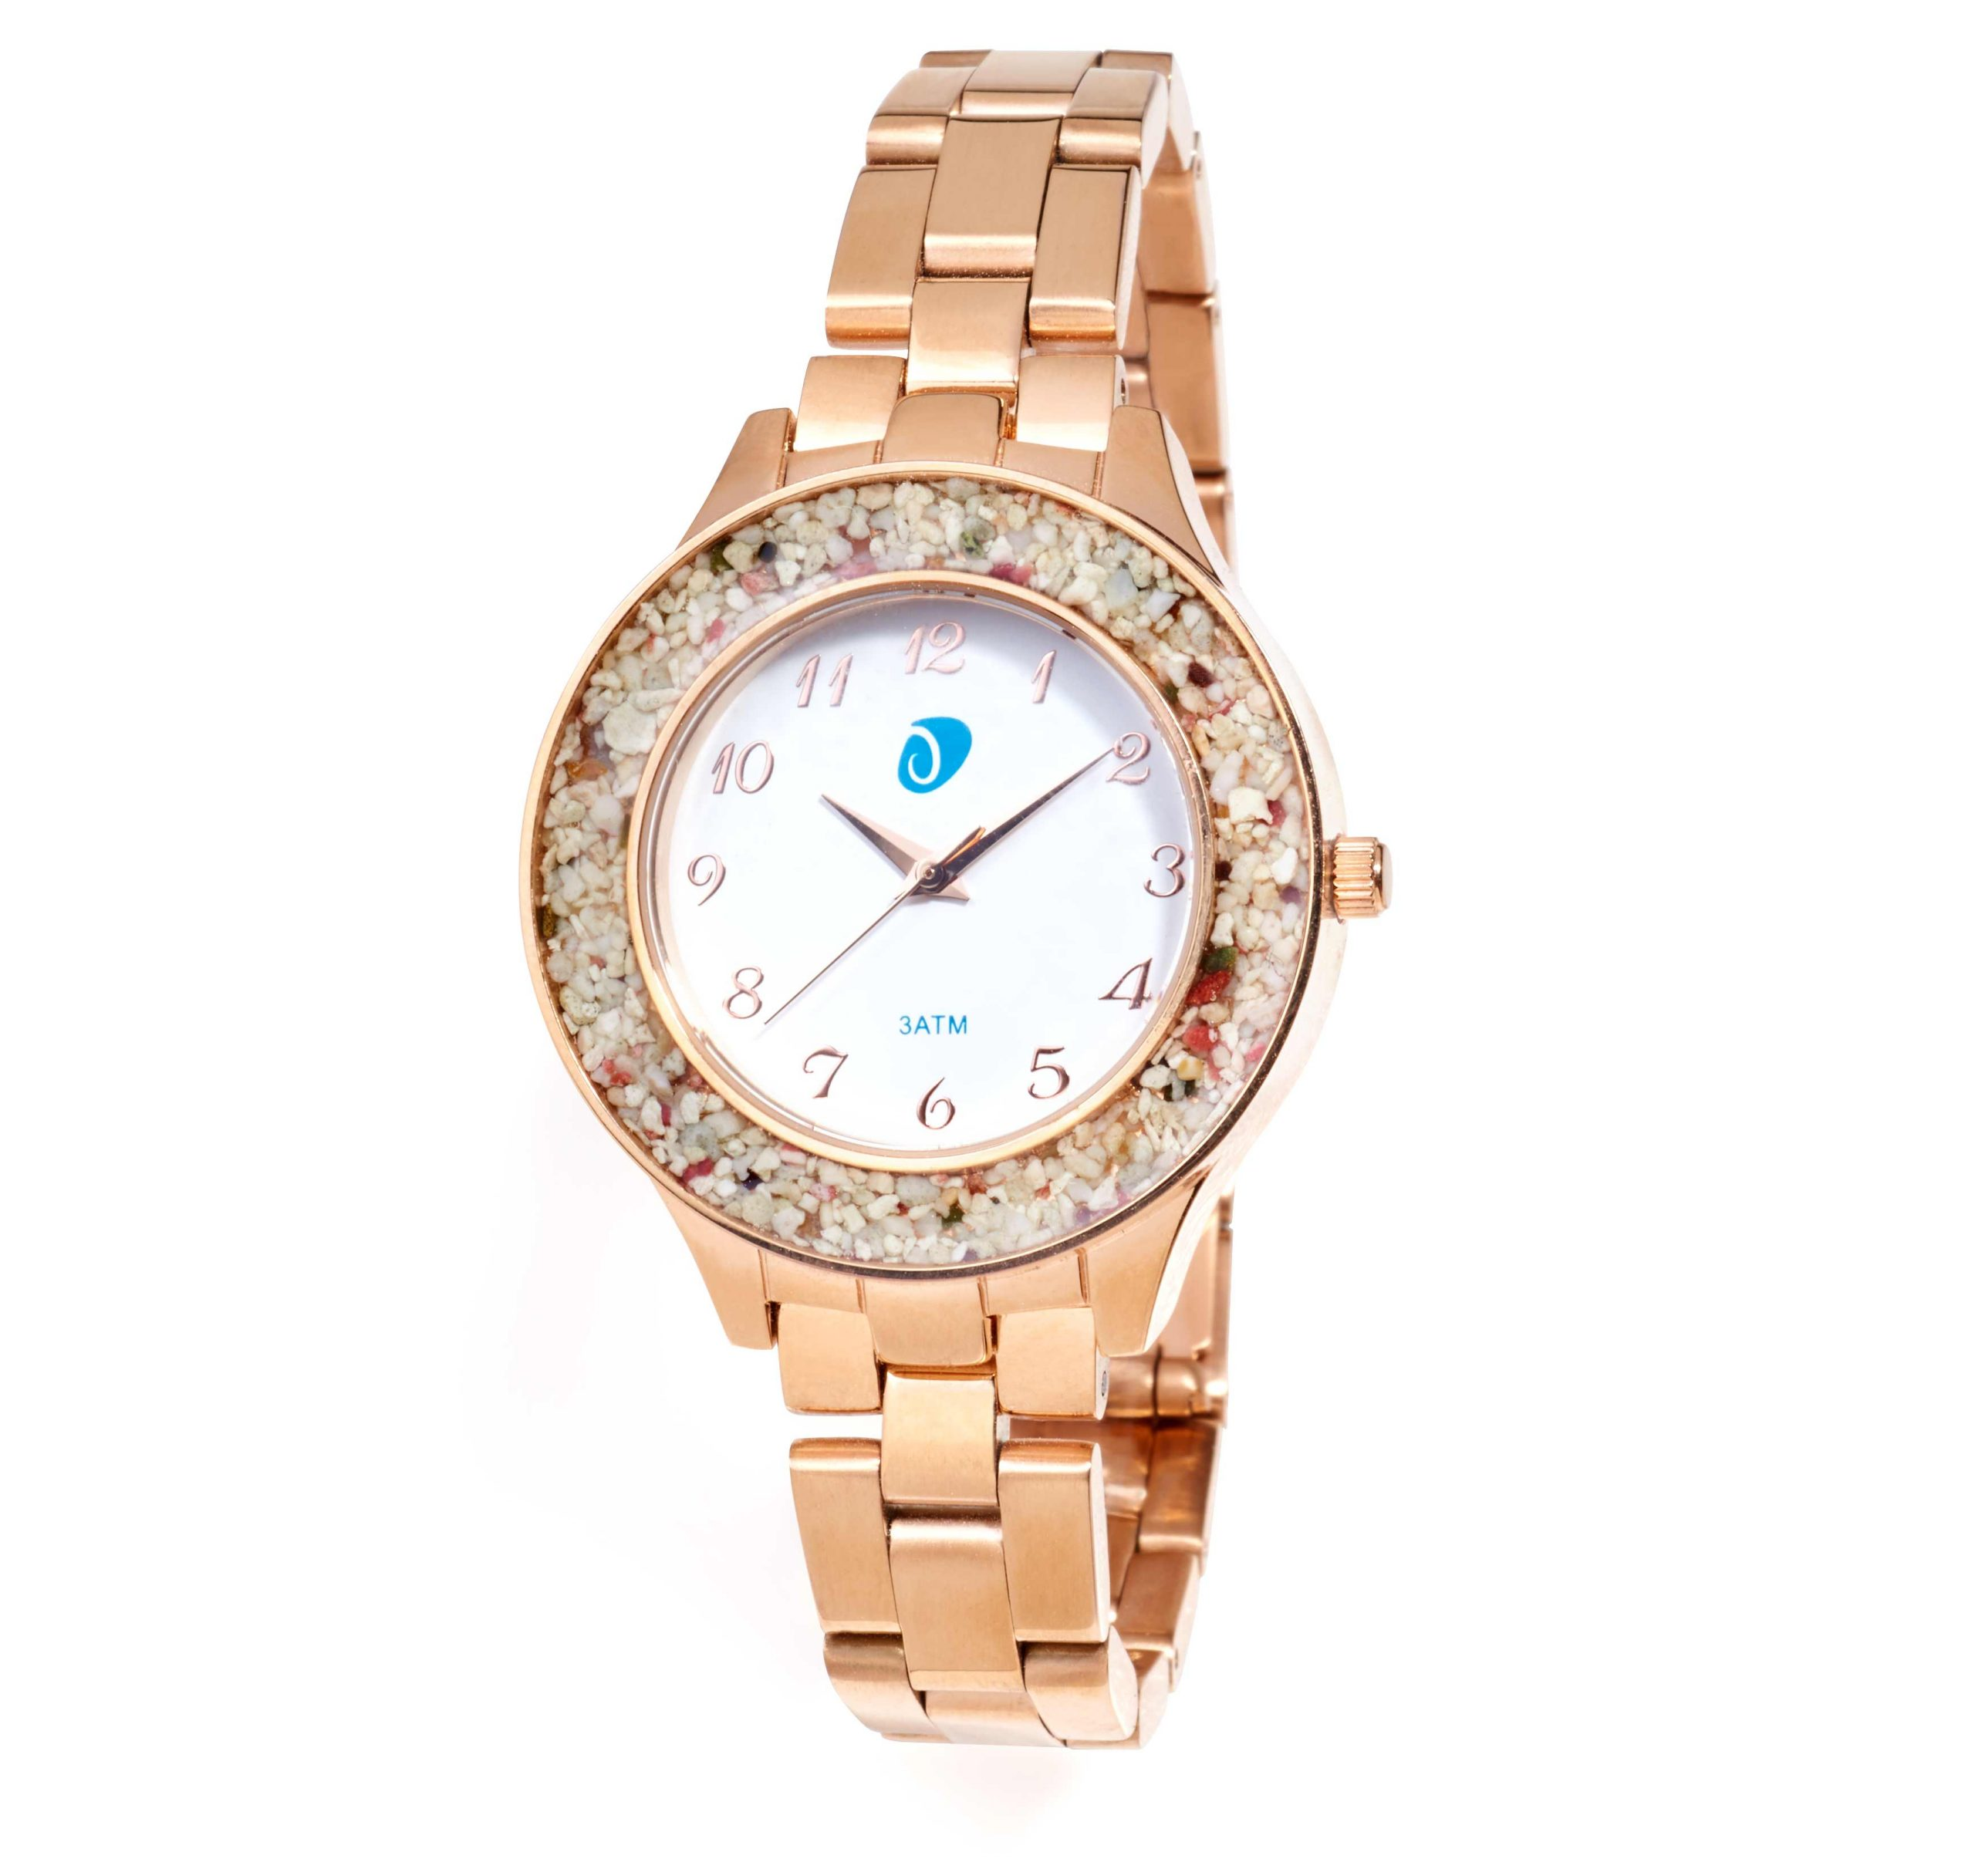 Jeweled Watch on White